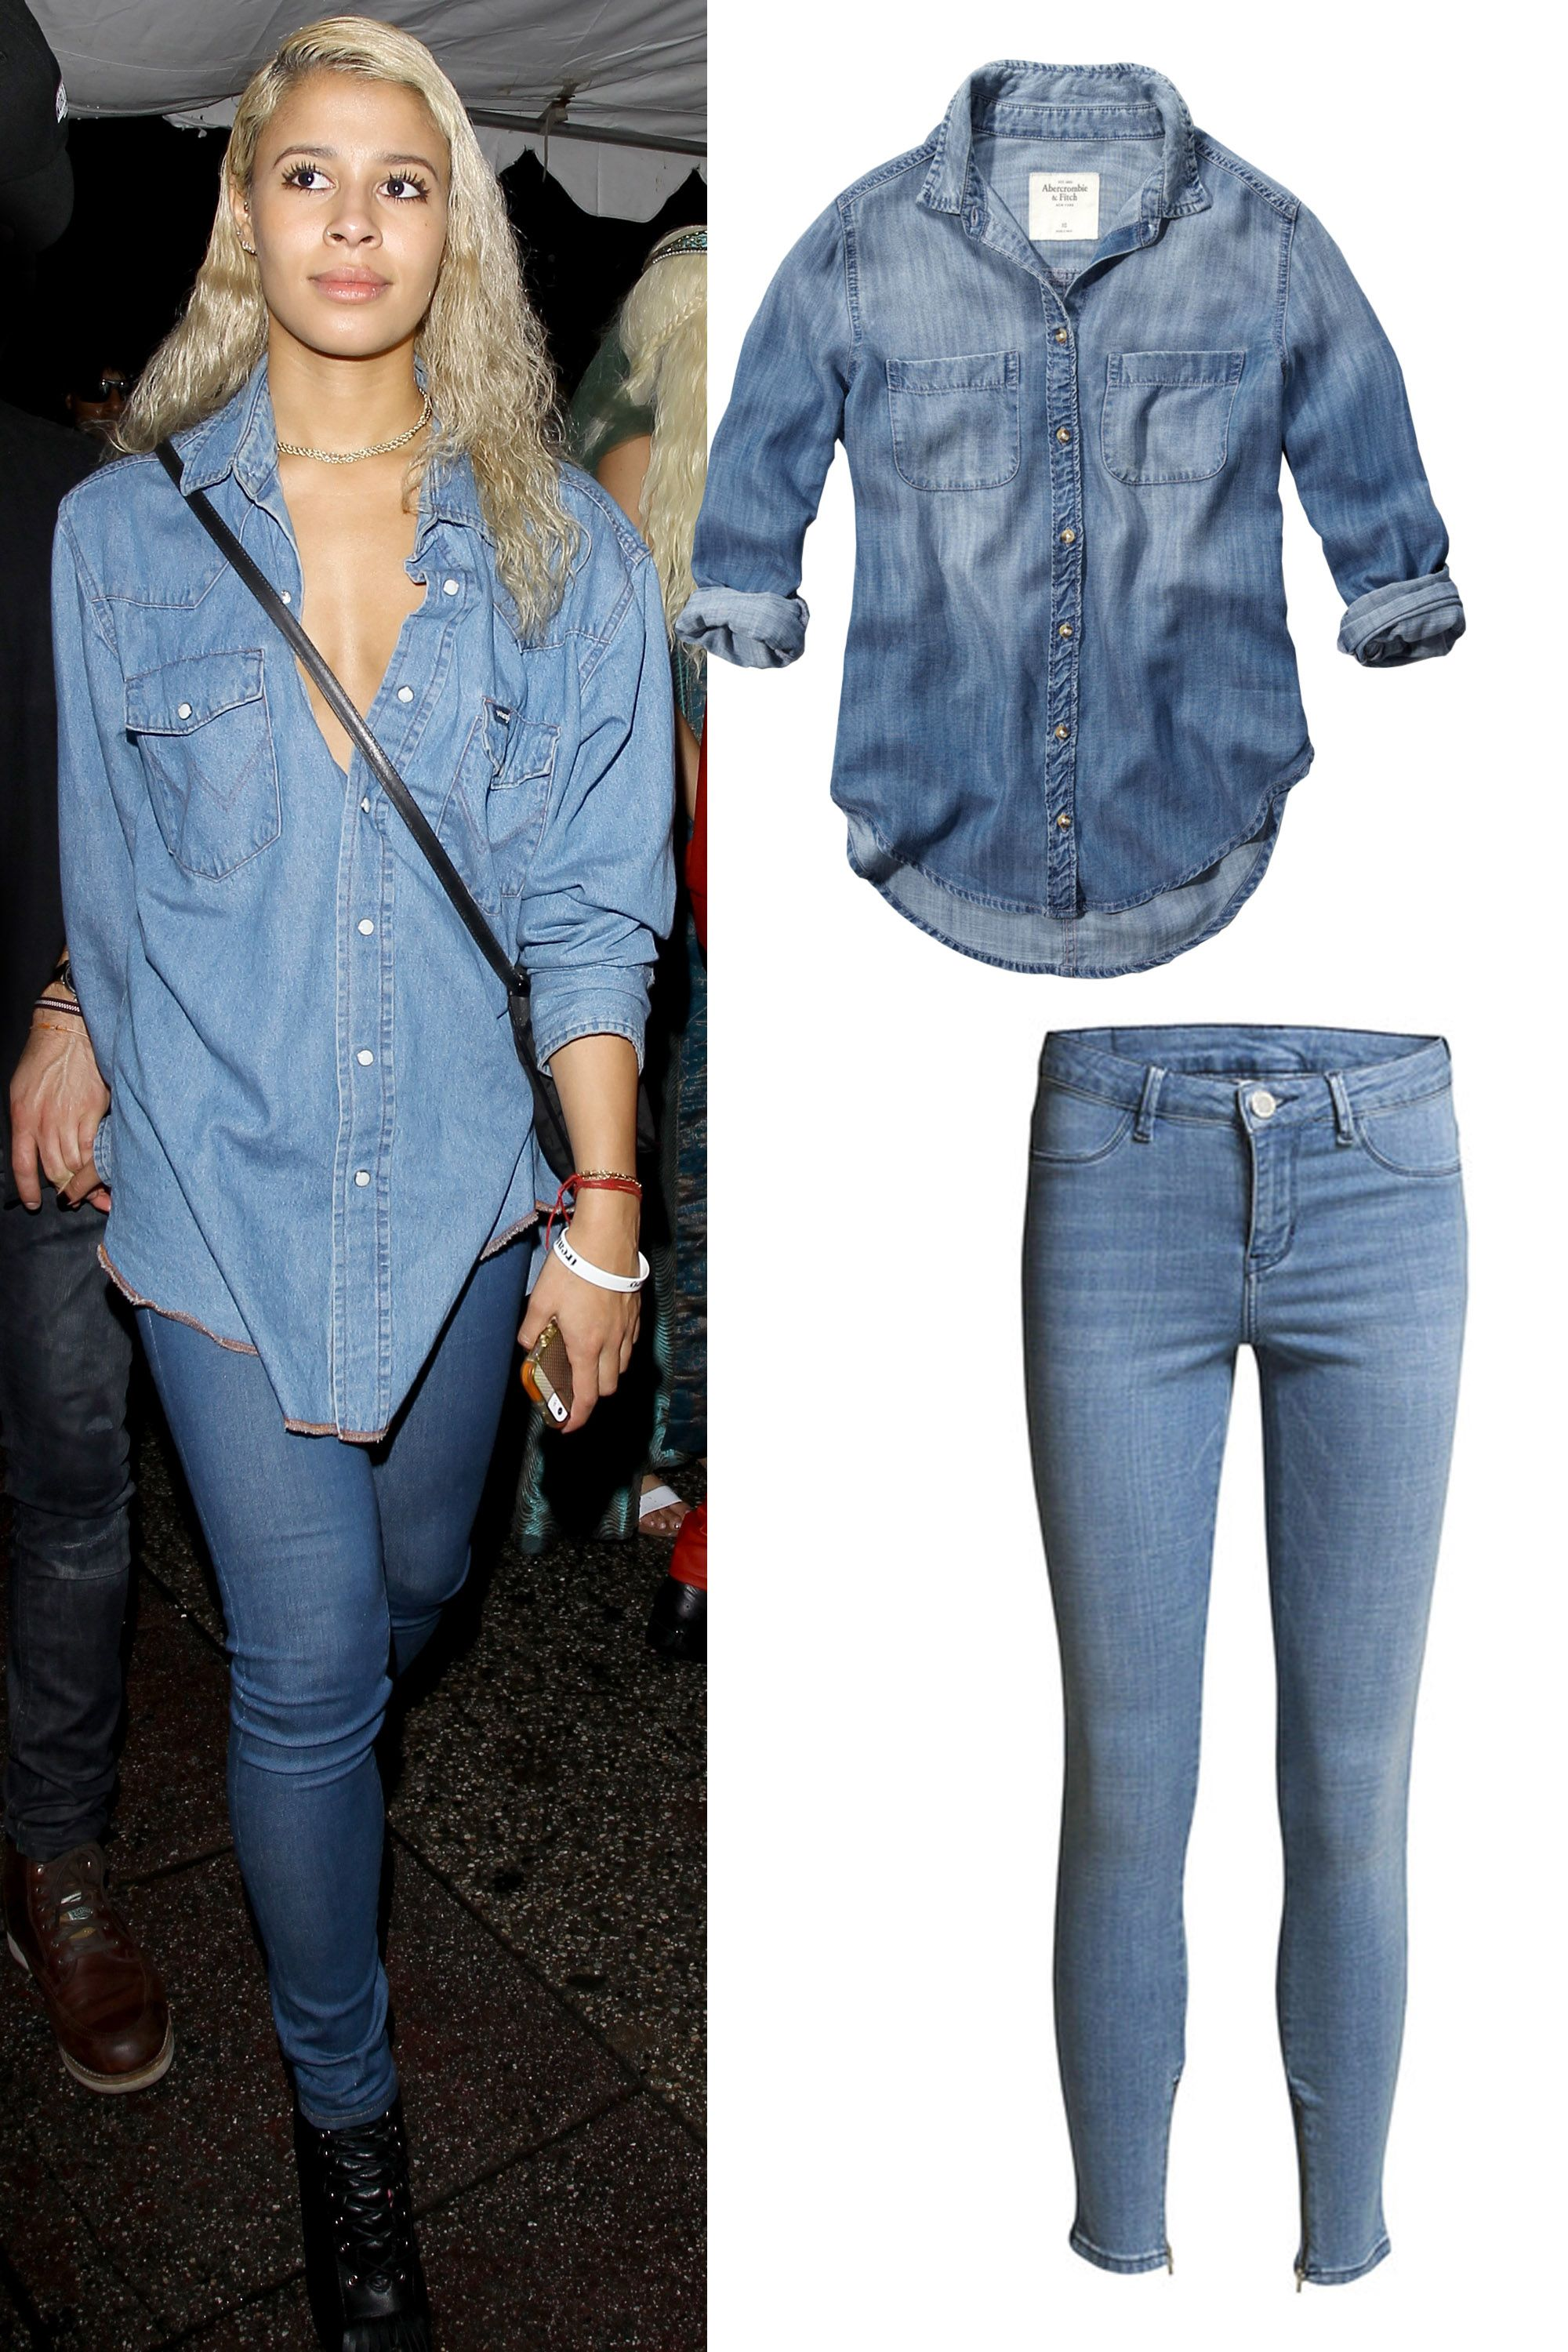 "Abercrombie & Fitch Eddy Denim Shirt, $68; <a href=""http://www.abercrombie.com/shop/us/p/eddy-denim-shirt-2287071?cmp=DIS:_ANF"">abercrombie.com</a>  2nd Day Jolie True Blue Skinny Jean, £120; <a href=""http://www.the-dressingroom.com/item/2nd-Day/JOLIE-TRUE-BLUE-SKINNY-JEANS-INDIGO-HEAVY-ENZYME/AMZY#.VPSNCK1g69F"">the-dressingroom.com</a>"